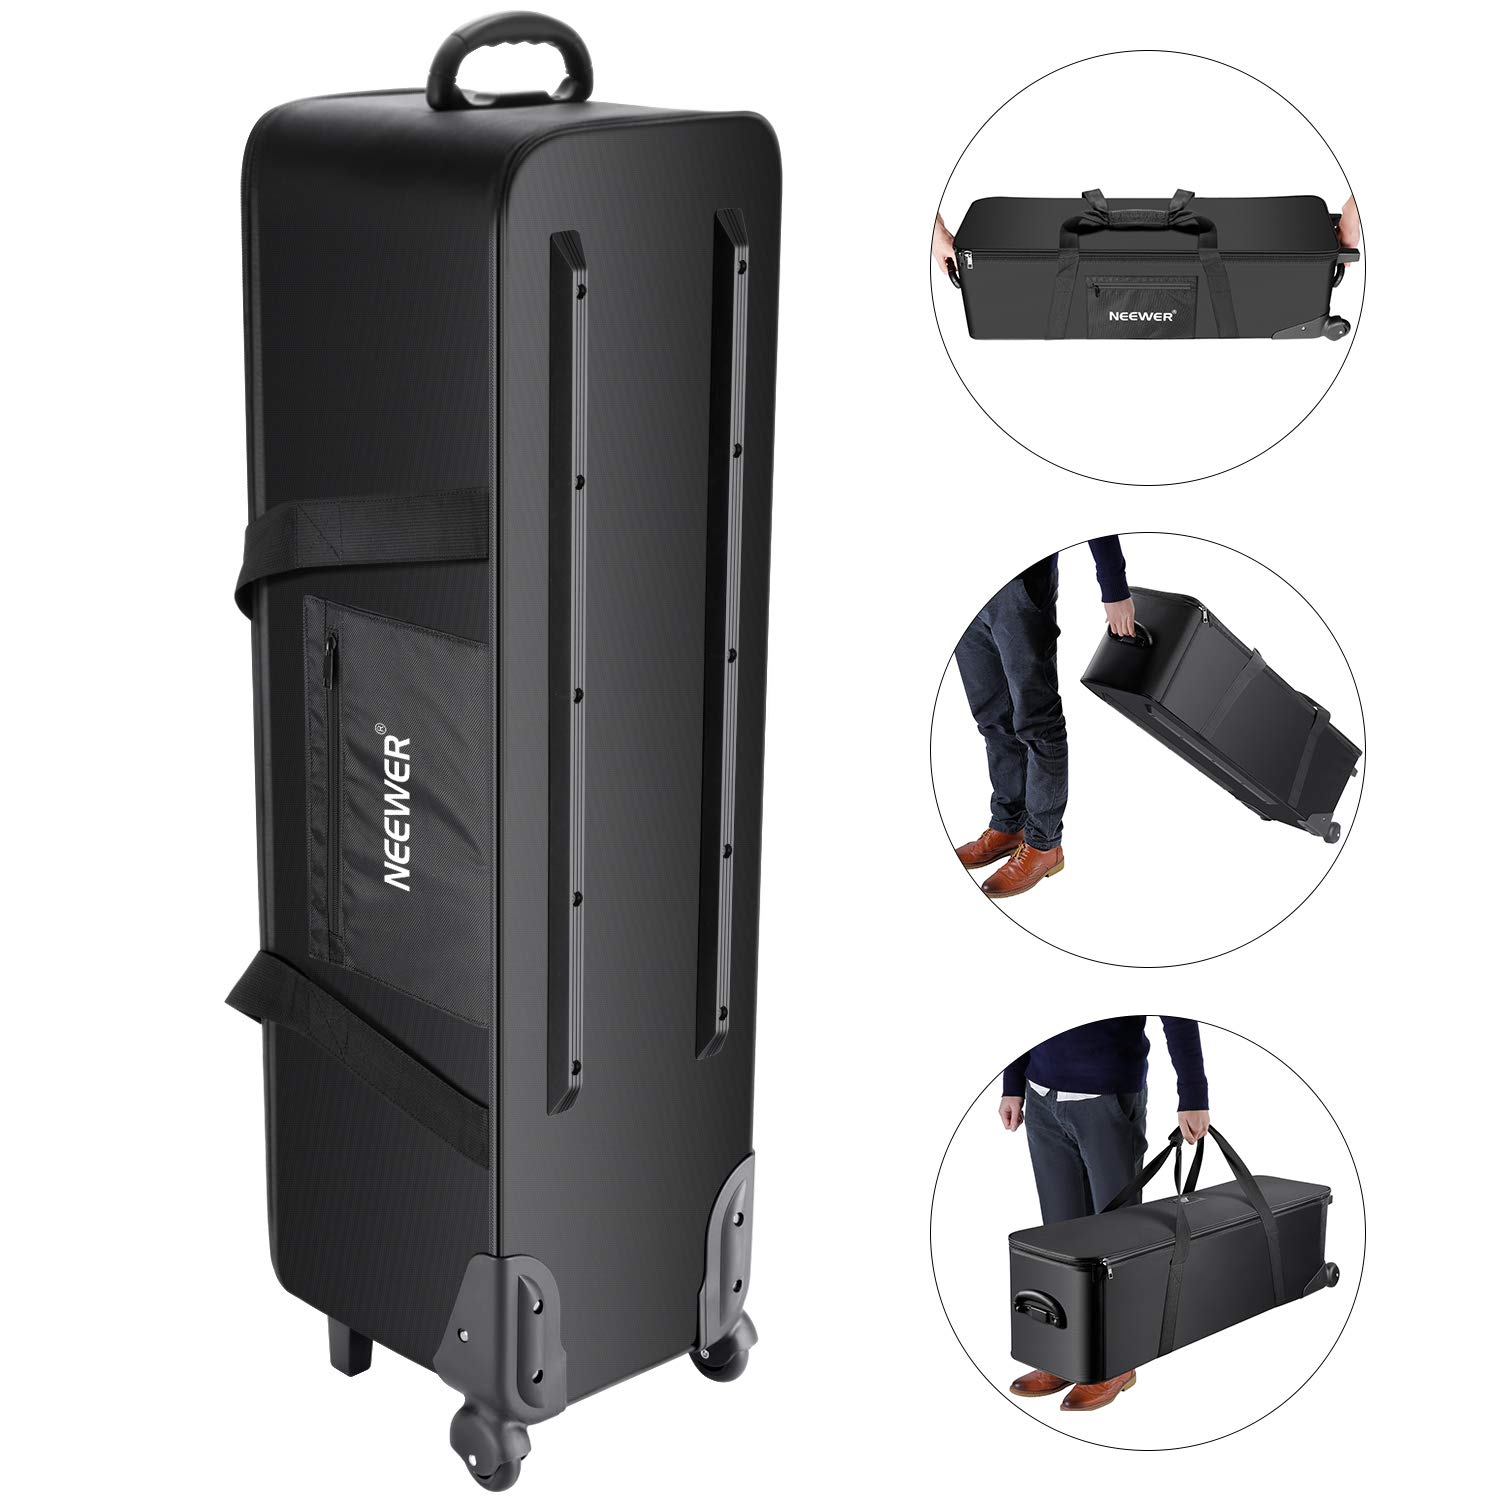 Neewer Photo Studio Equipment Case Rolling Bag 40.1x11.8x11.8 inches/102x30x30cm Trolley Carrying Case for Light Stand, Tripod, Light, Umbrella, etc by Neewer